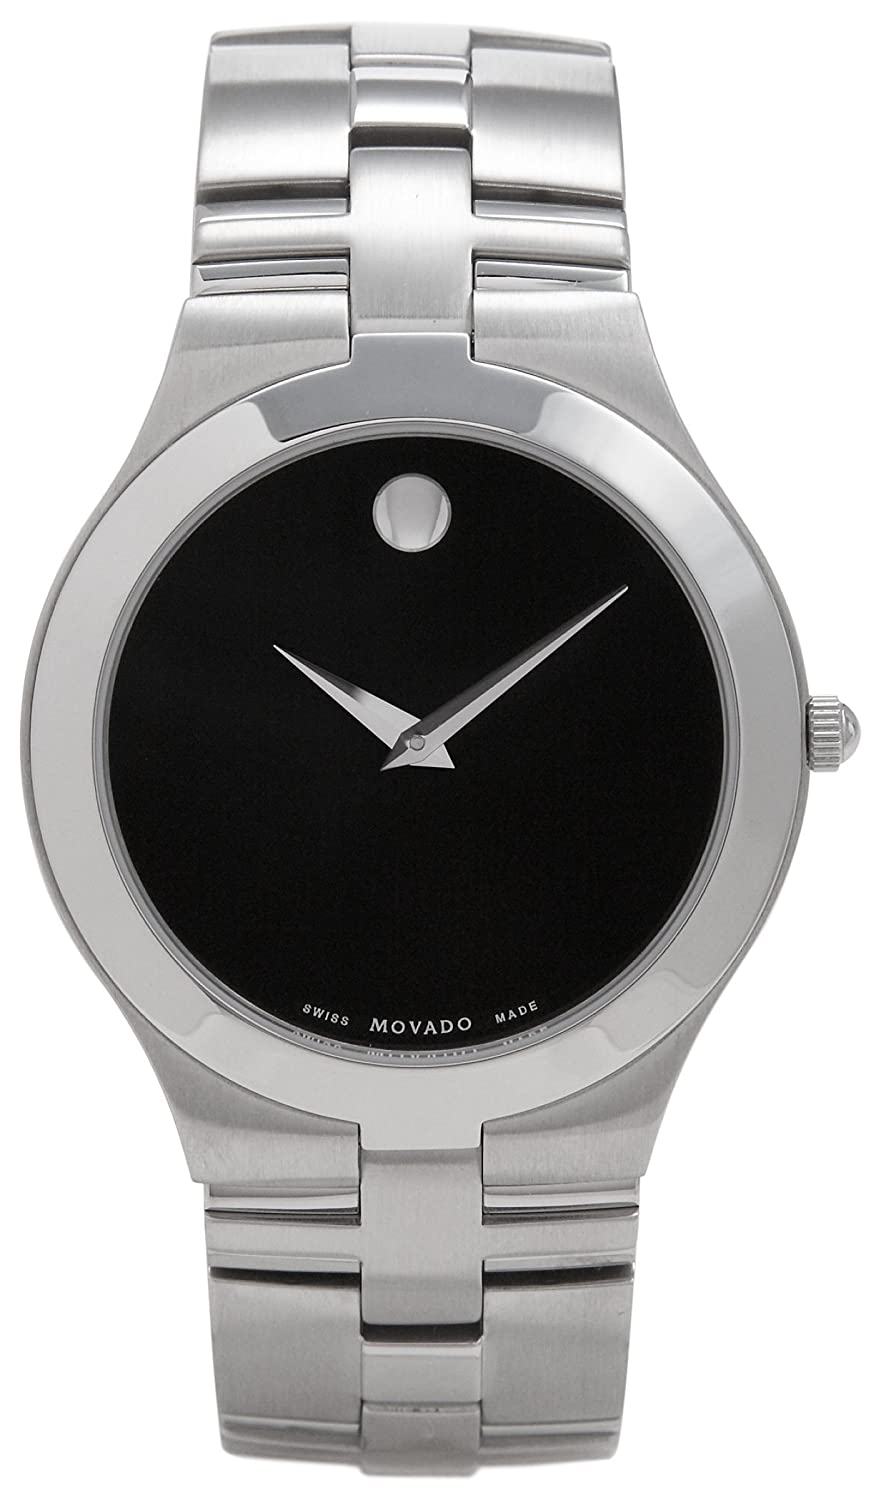 f230632c796514 Amazon.com: Movado Men's 605023 Juro Stainless-Steel Watch: Movado: Watches